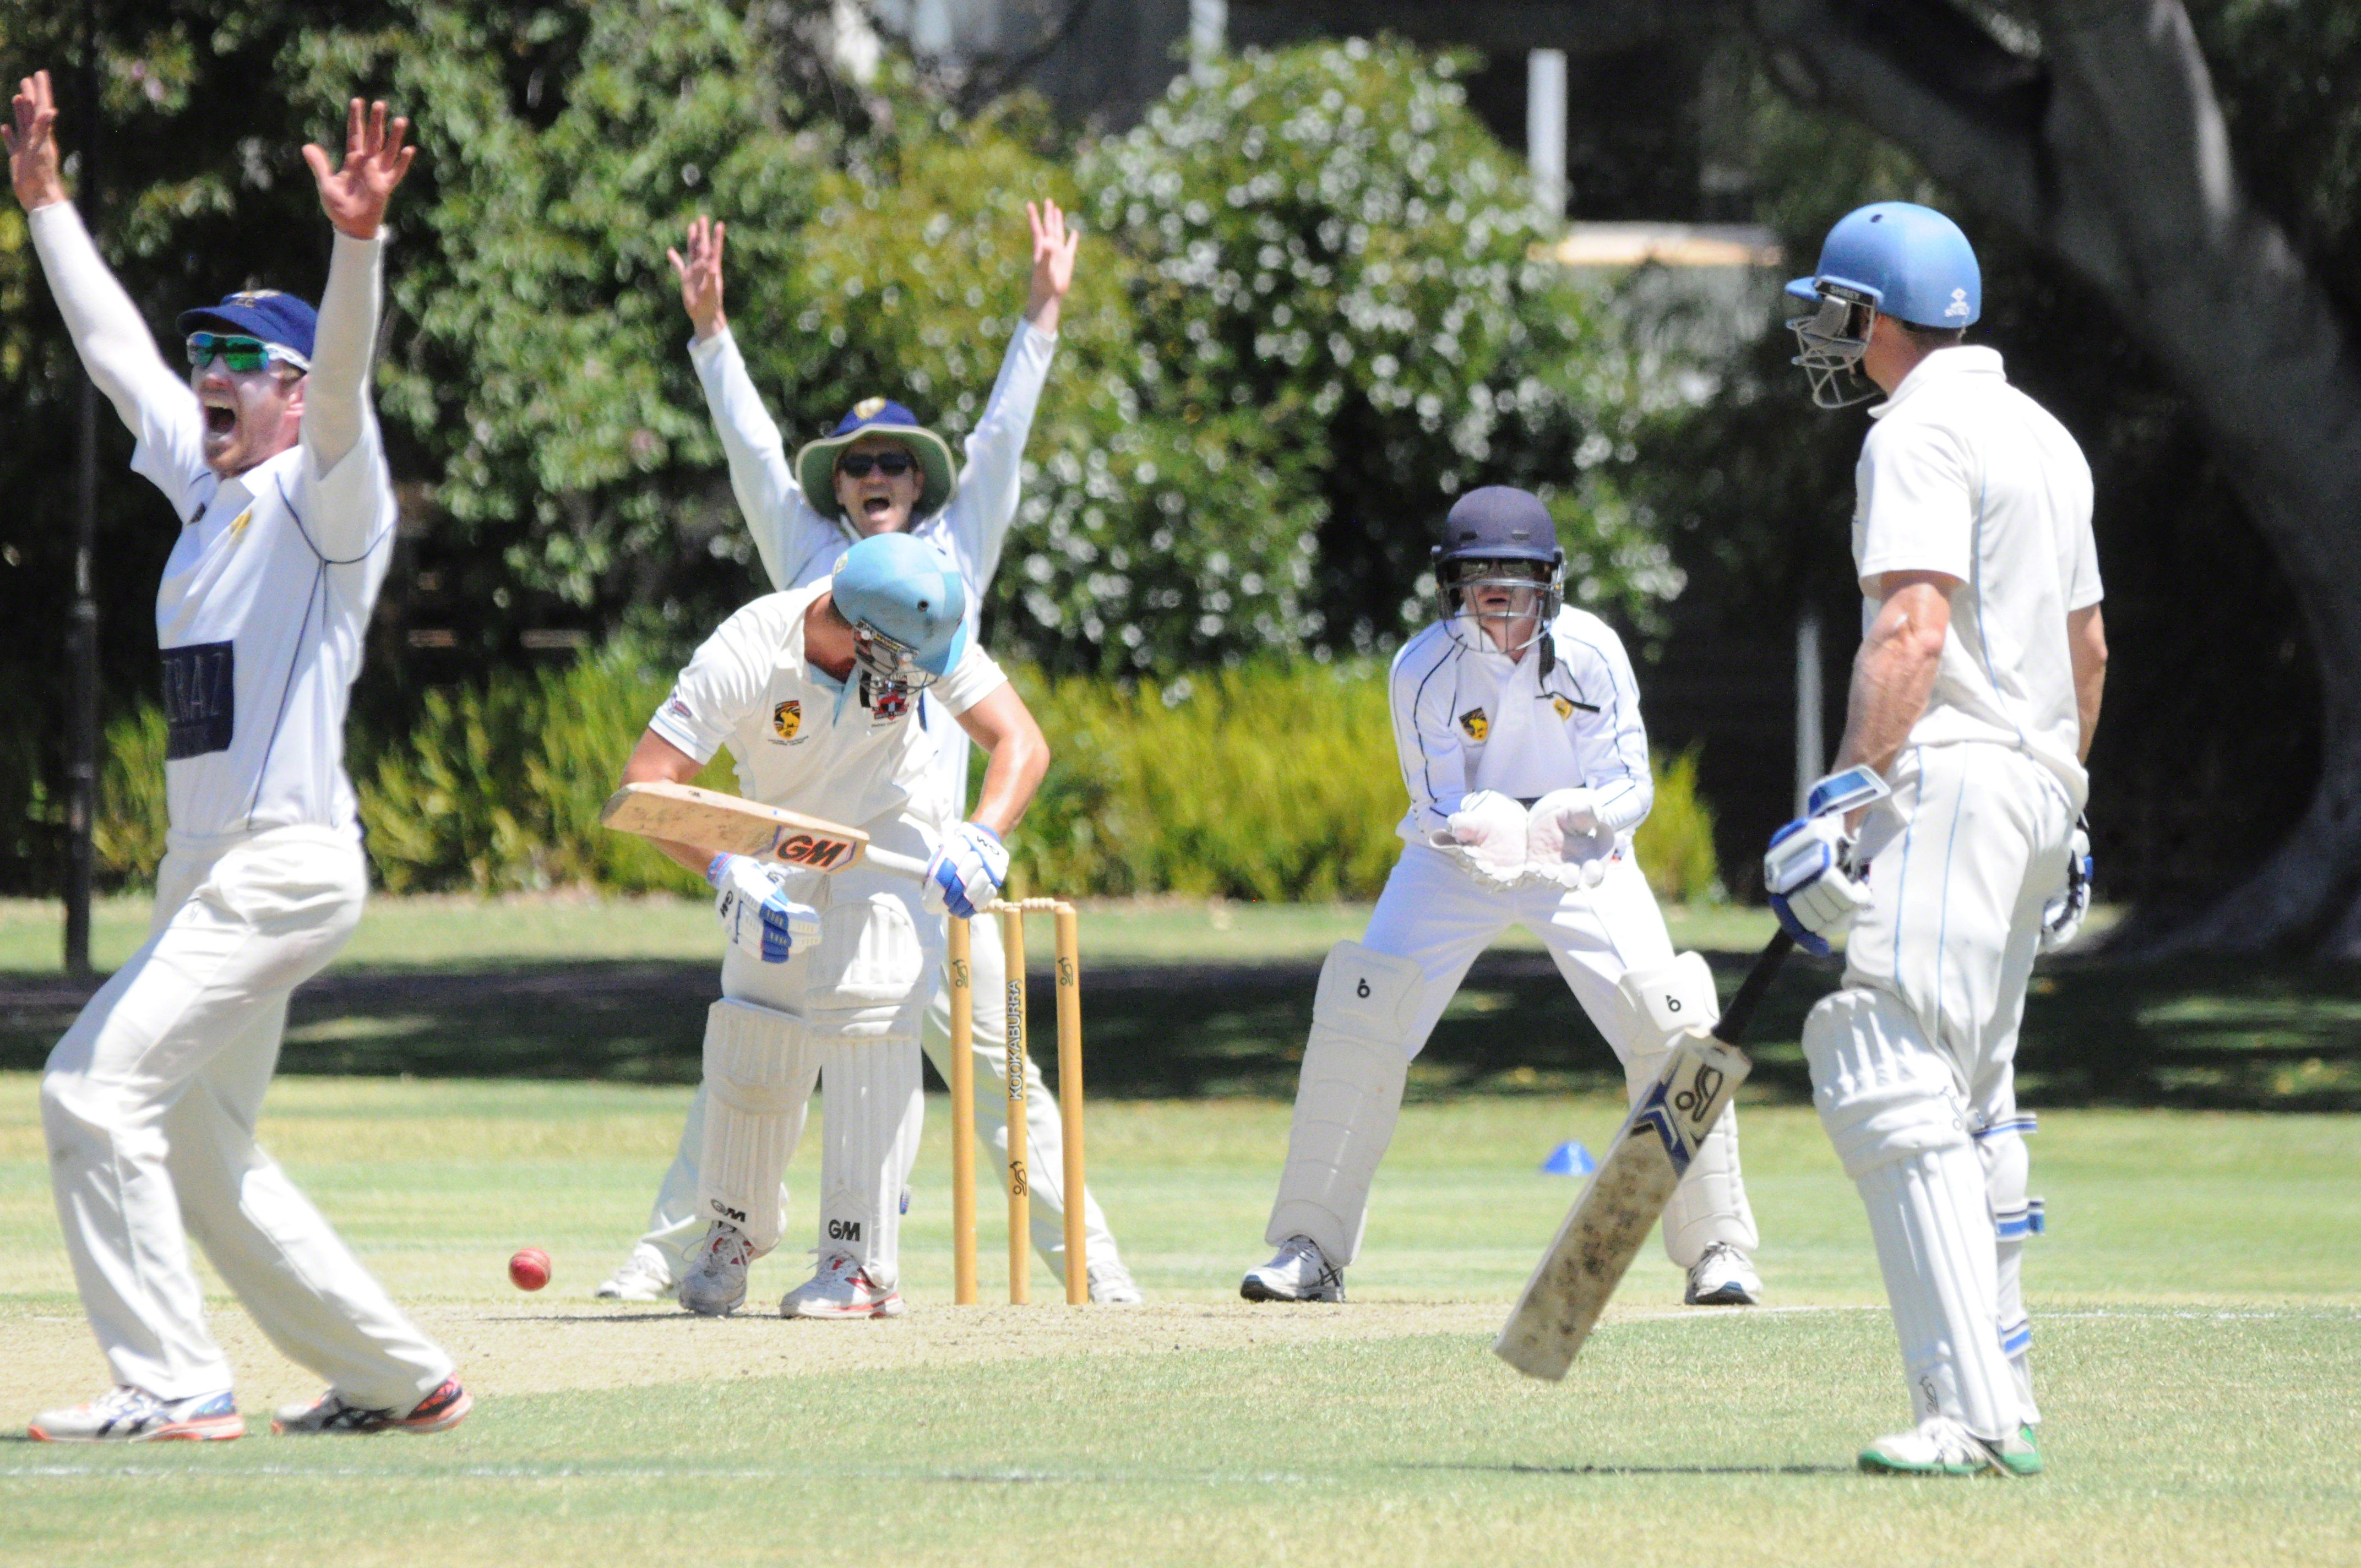 WACA Premier Cricket: Tigers in strong position against Bayswater-Morley